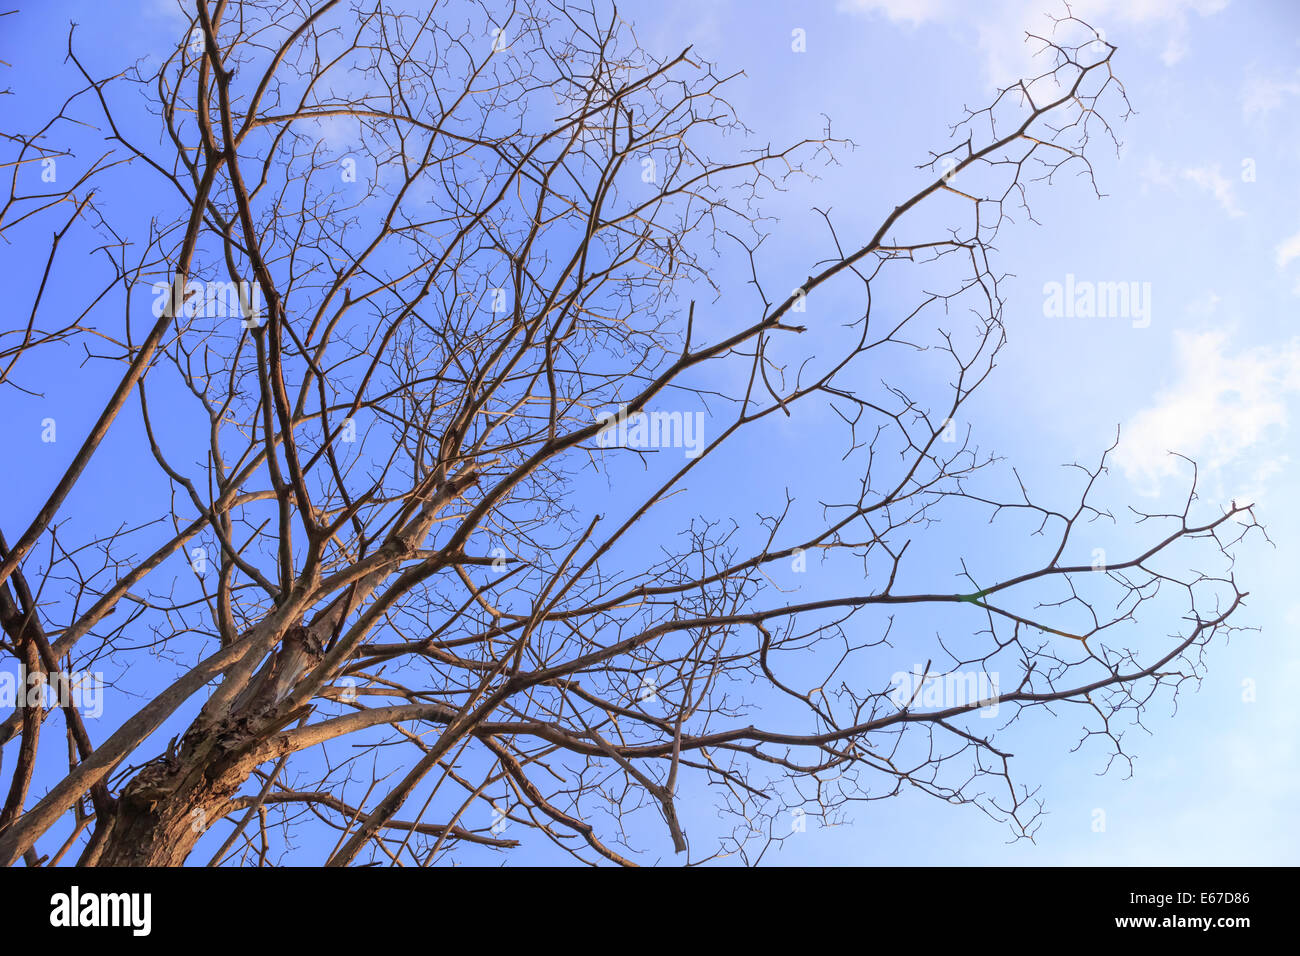 Leafless tree with blue sky - Stock Image